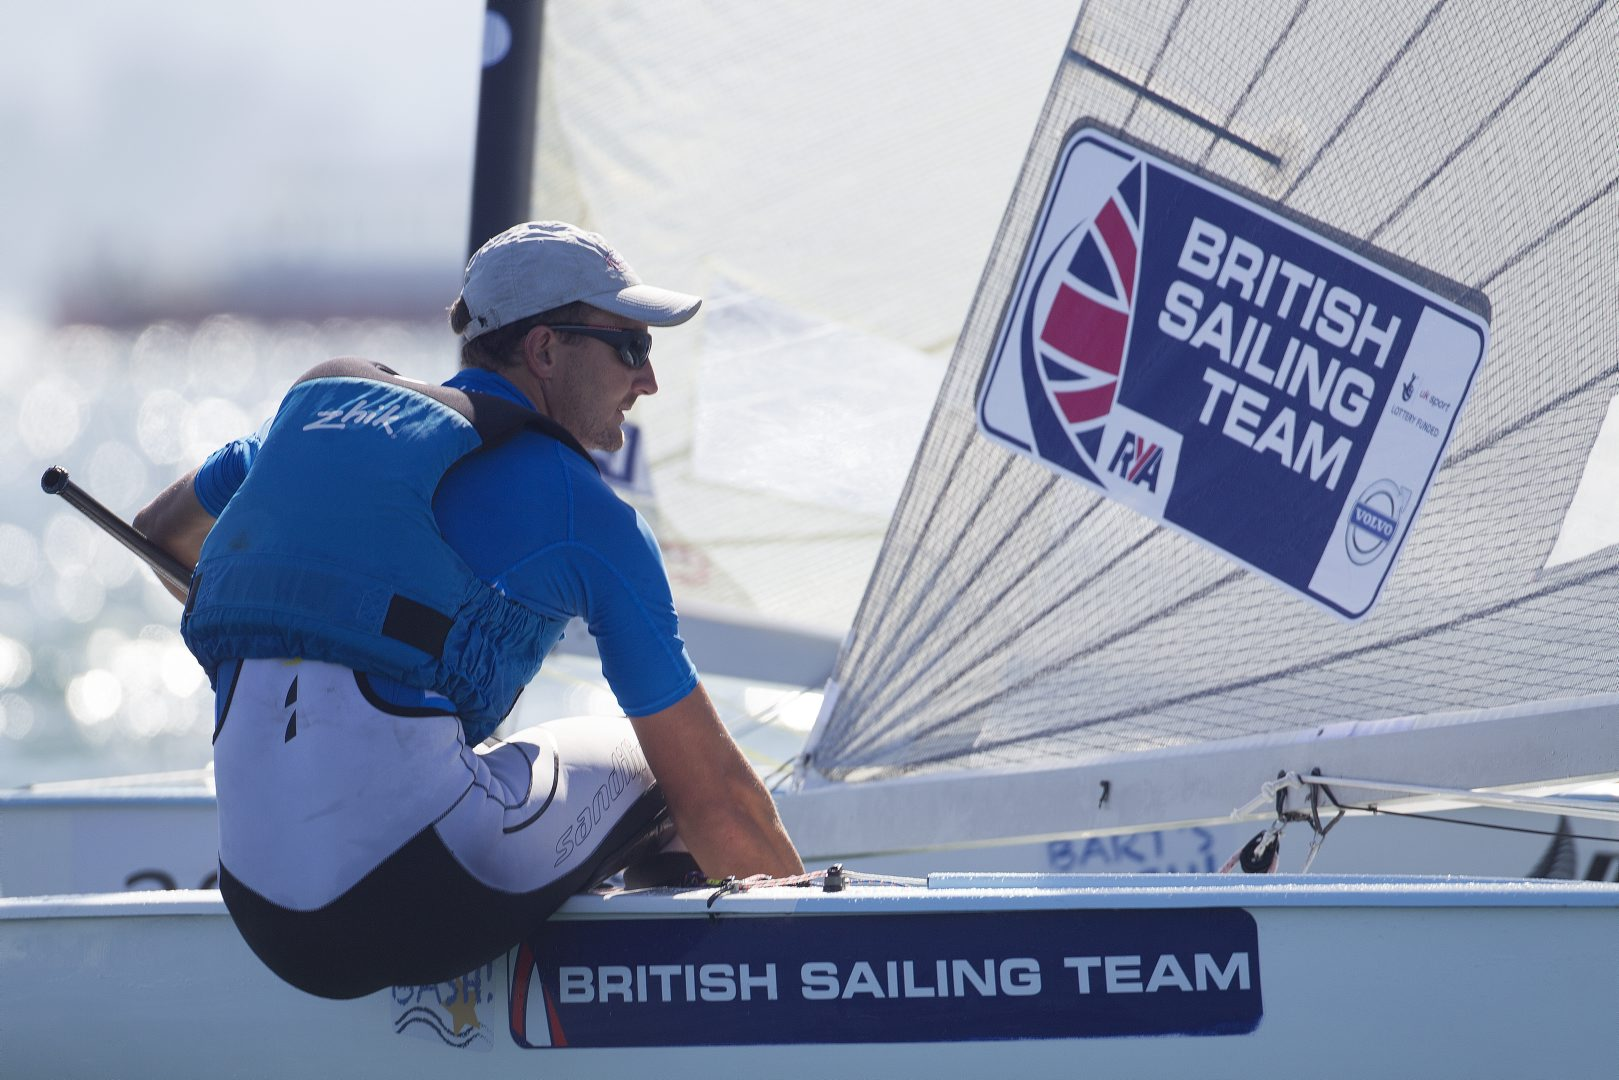 Giles Scott has been awarded British Sailing's Athlete of the Year ©Ocean Images/British Sailing Team